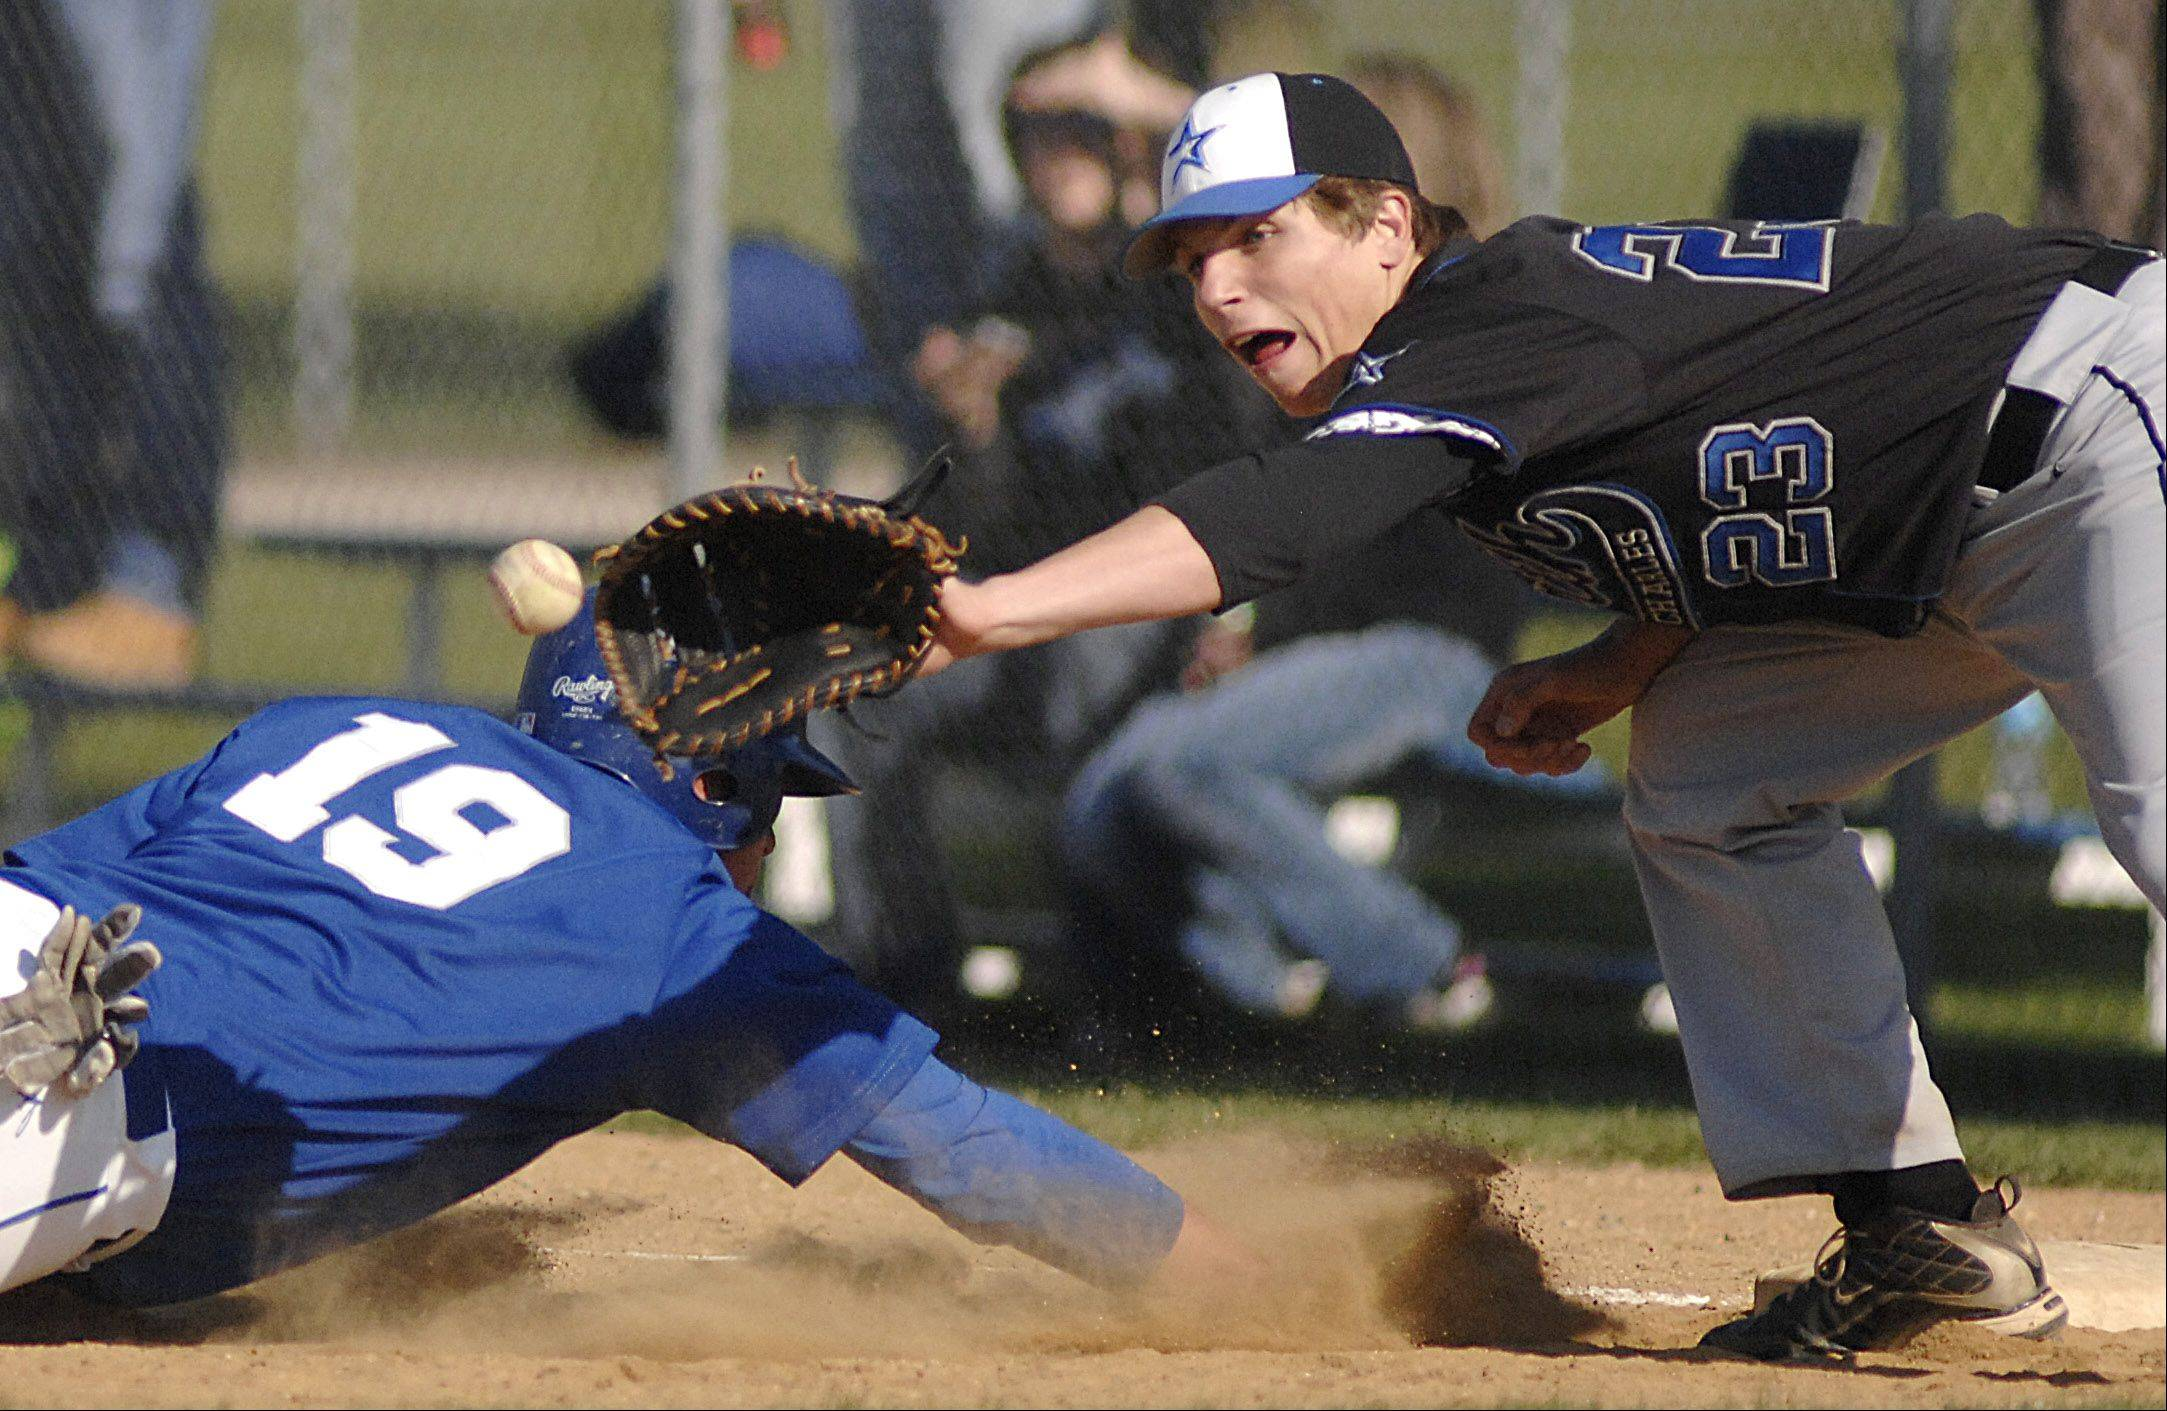 Geneva's Anthony Bragg is safe back on first base St. Charles North's Ryan Thomas eyes the ball Thursday.